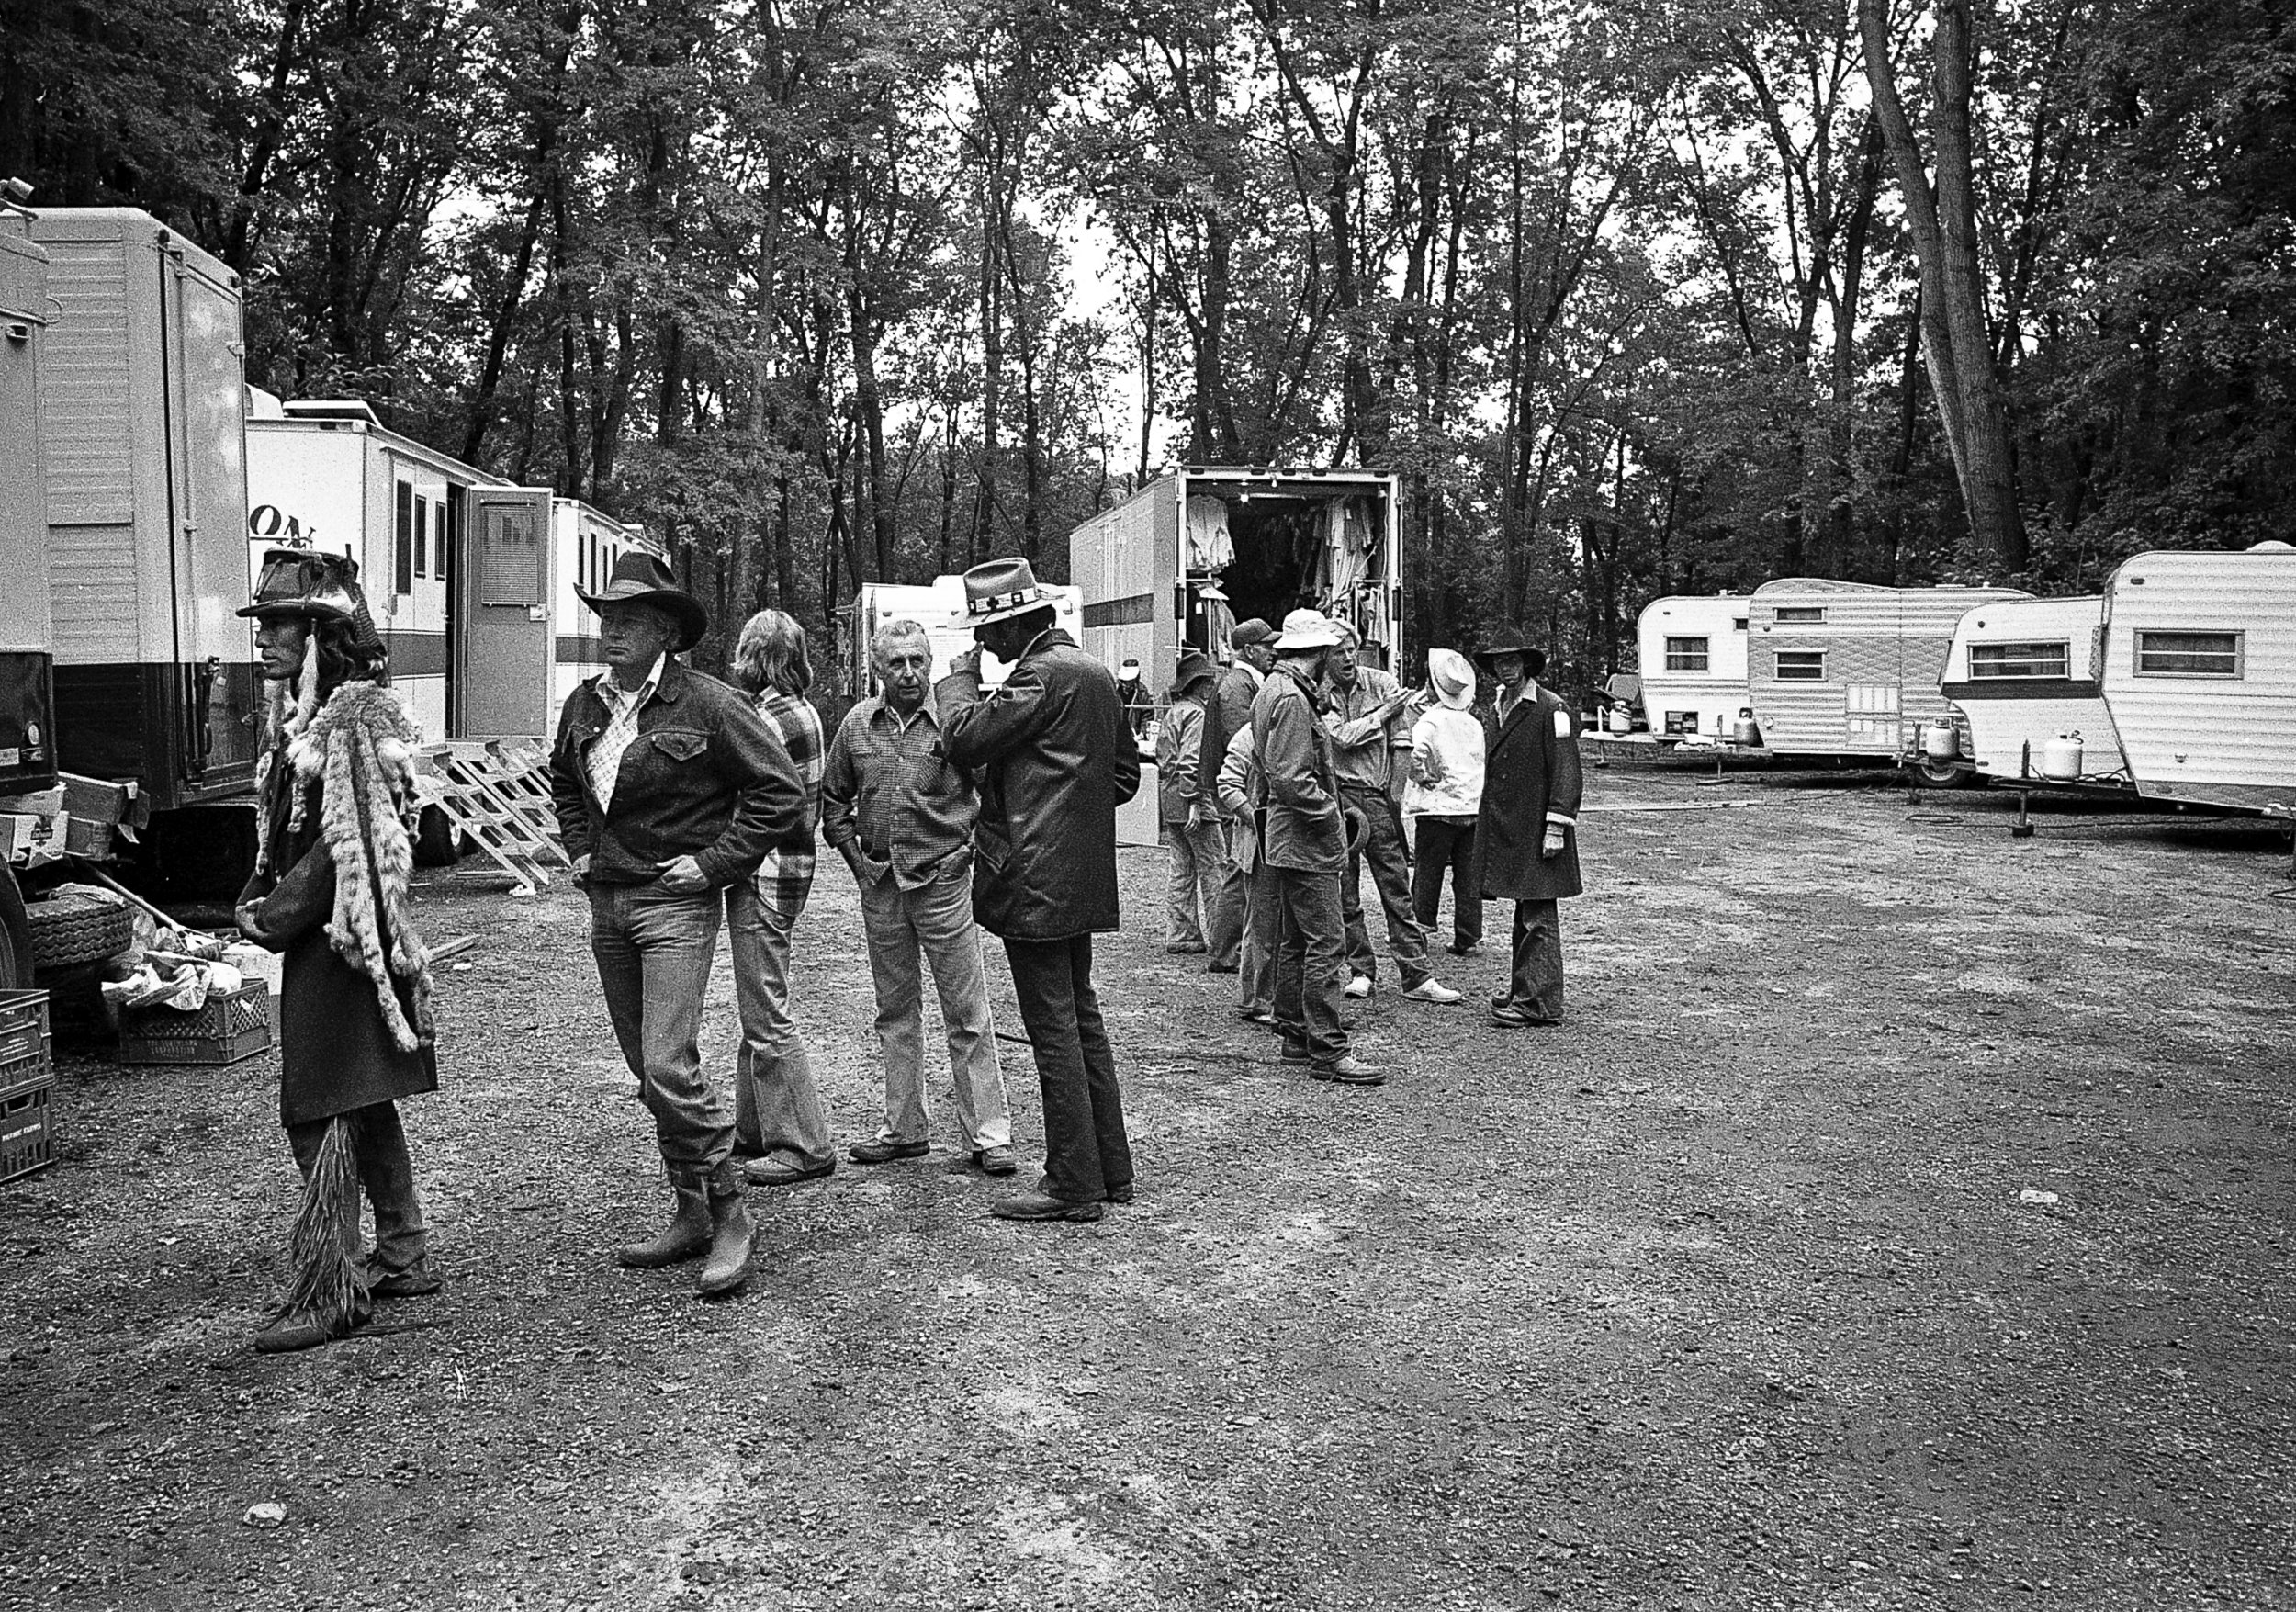 """The line for the catering truck during a break in filming for the television mini series """"The Chisholms"""" at New Salem State Historic Site, October 2, 1978. File/Bill Hagen/The State Journal-Register"""